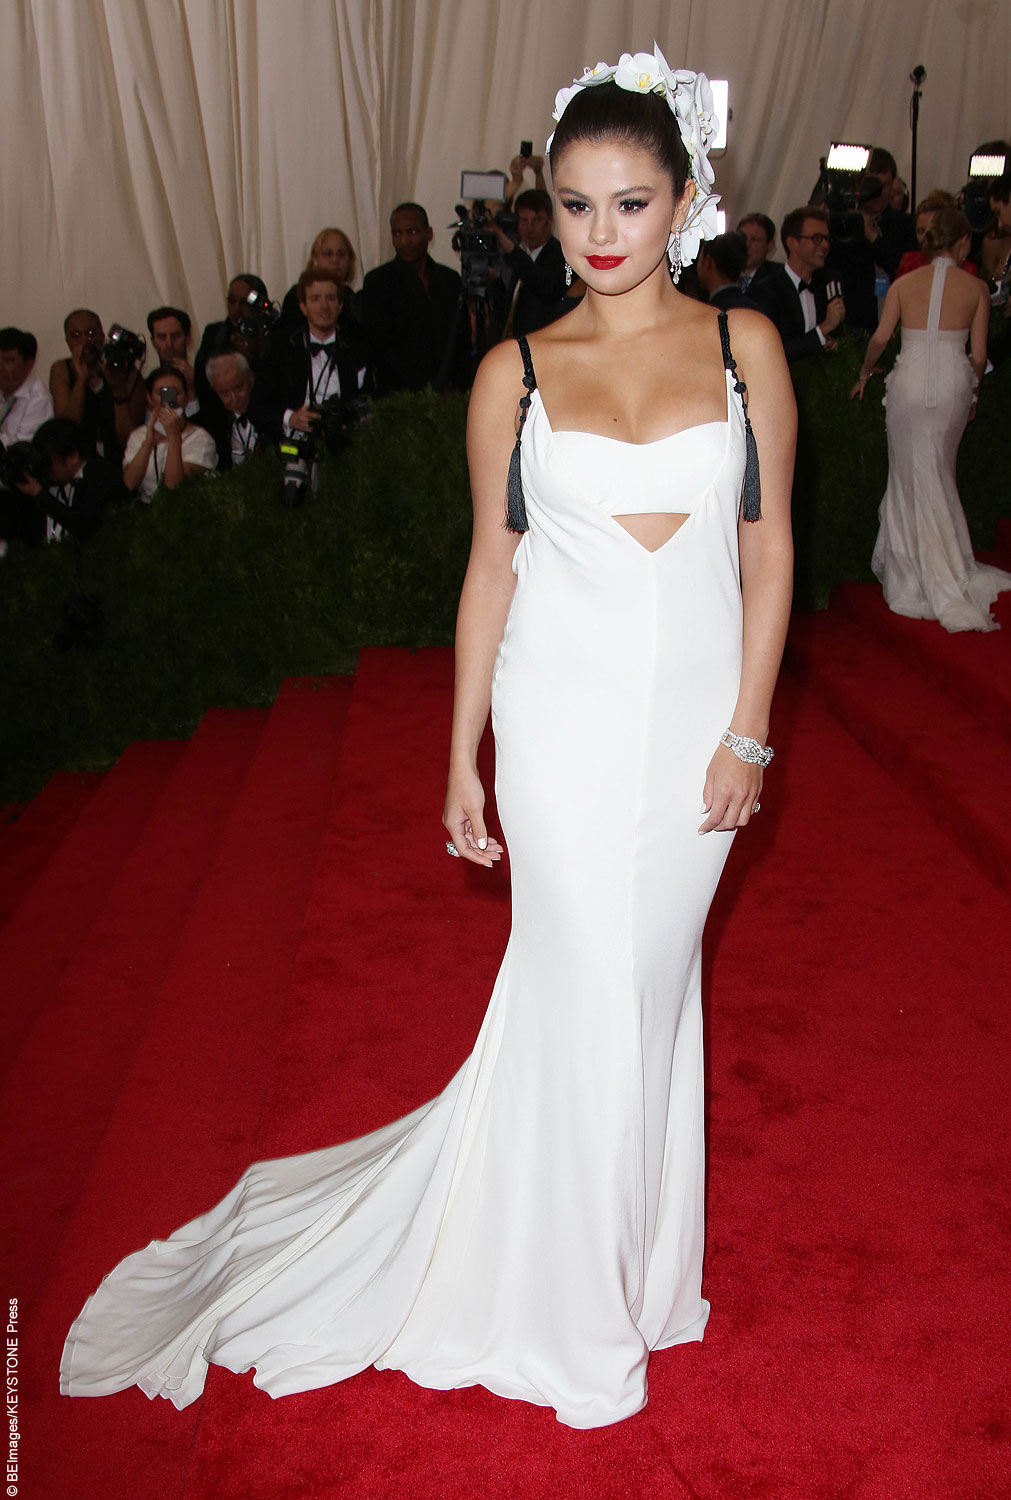 Selena Gomez showed off her Latin curves in a white Vera Wang gown. Selena showed some skin in the backless number and accessorized the look with a beautiful orchid headpiece over top of her sleek up-do. With elegant red lips, Selena caught the attention of ex-boyfriend Justin Bieber,who later said how beautiful she looked to […]